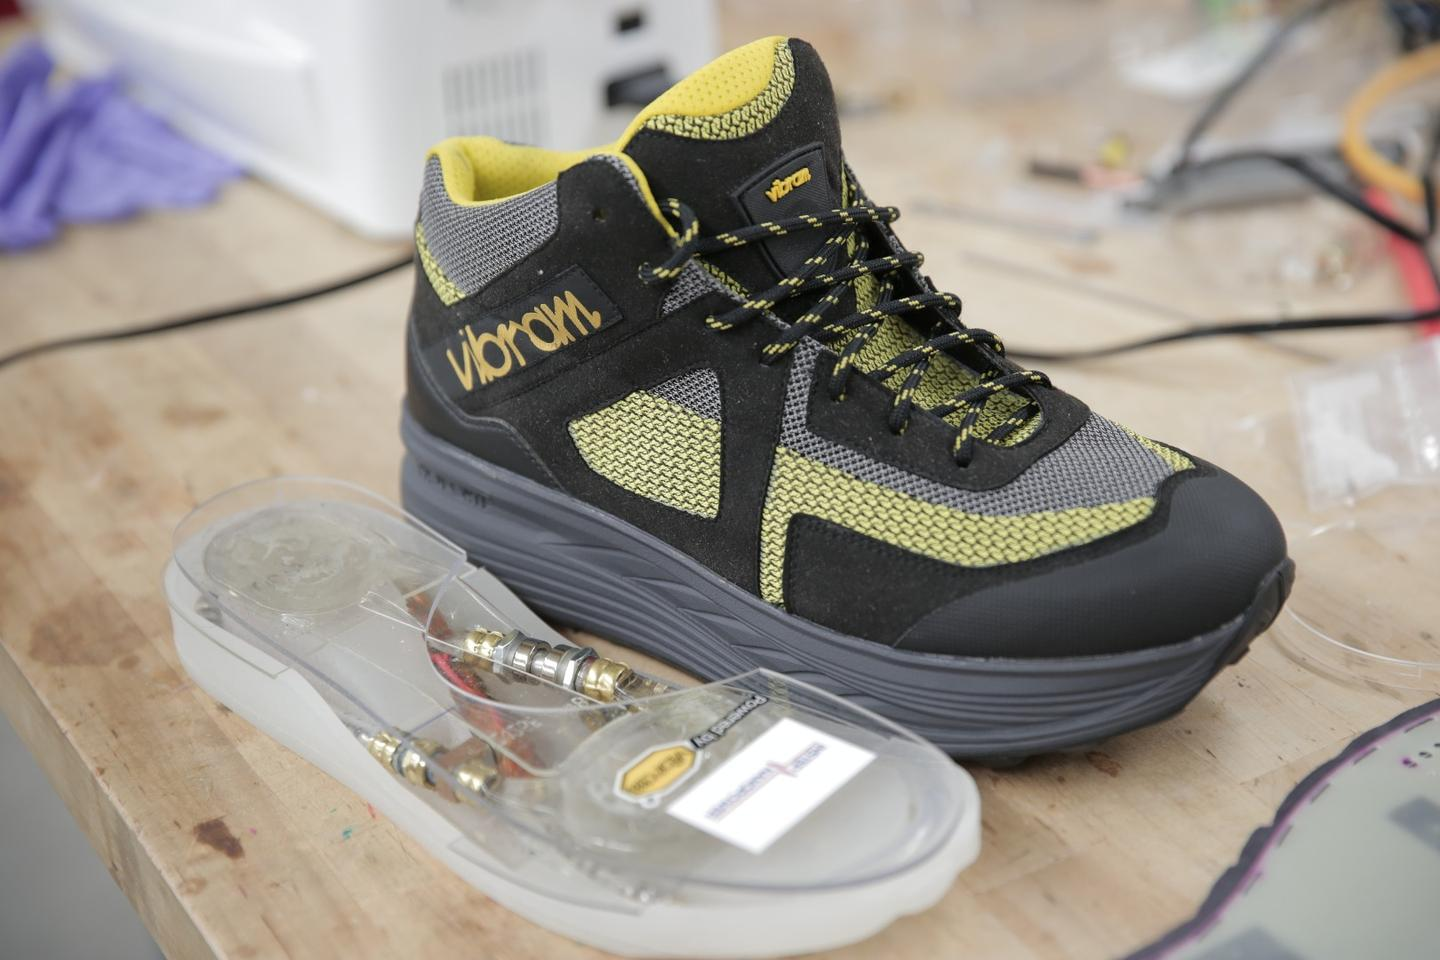 Energy-harvesting shoes could be used to power mobile devices through a charging cable, be adapted for the military or act as a power source for people in remote areas